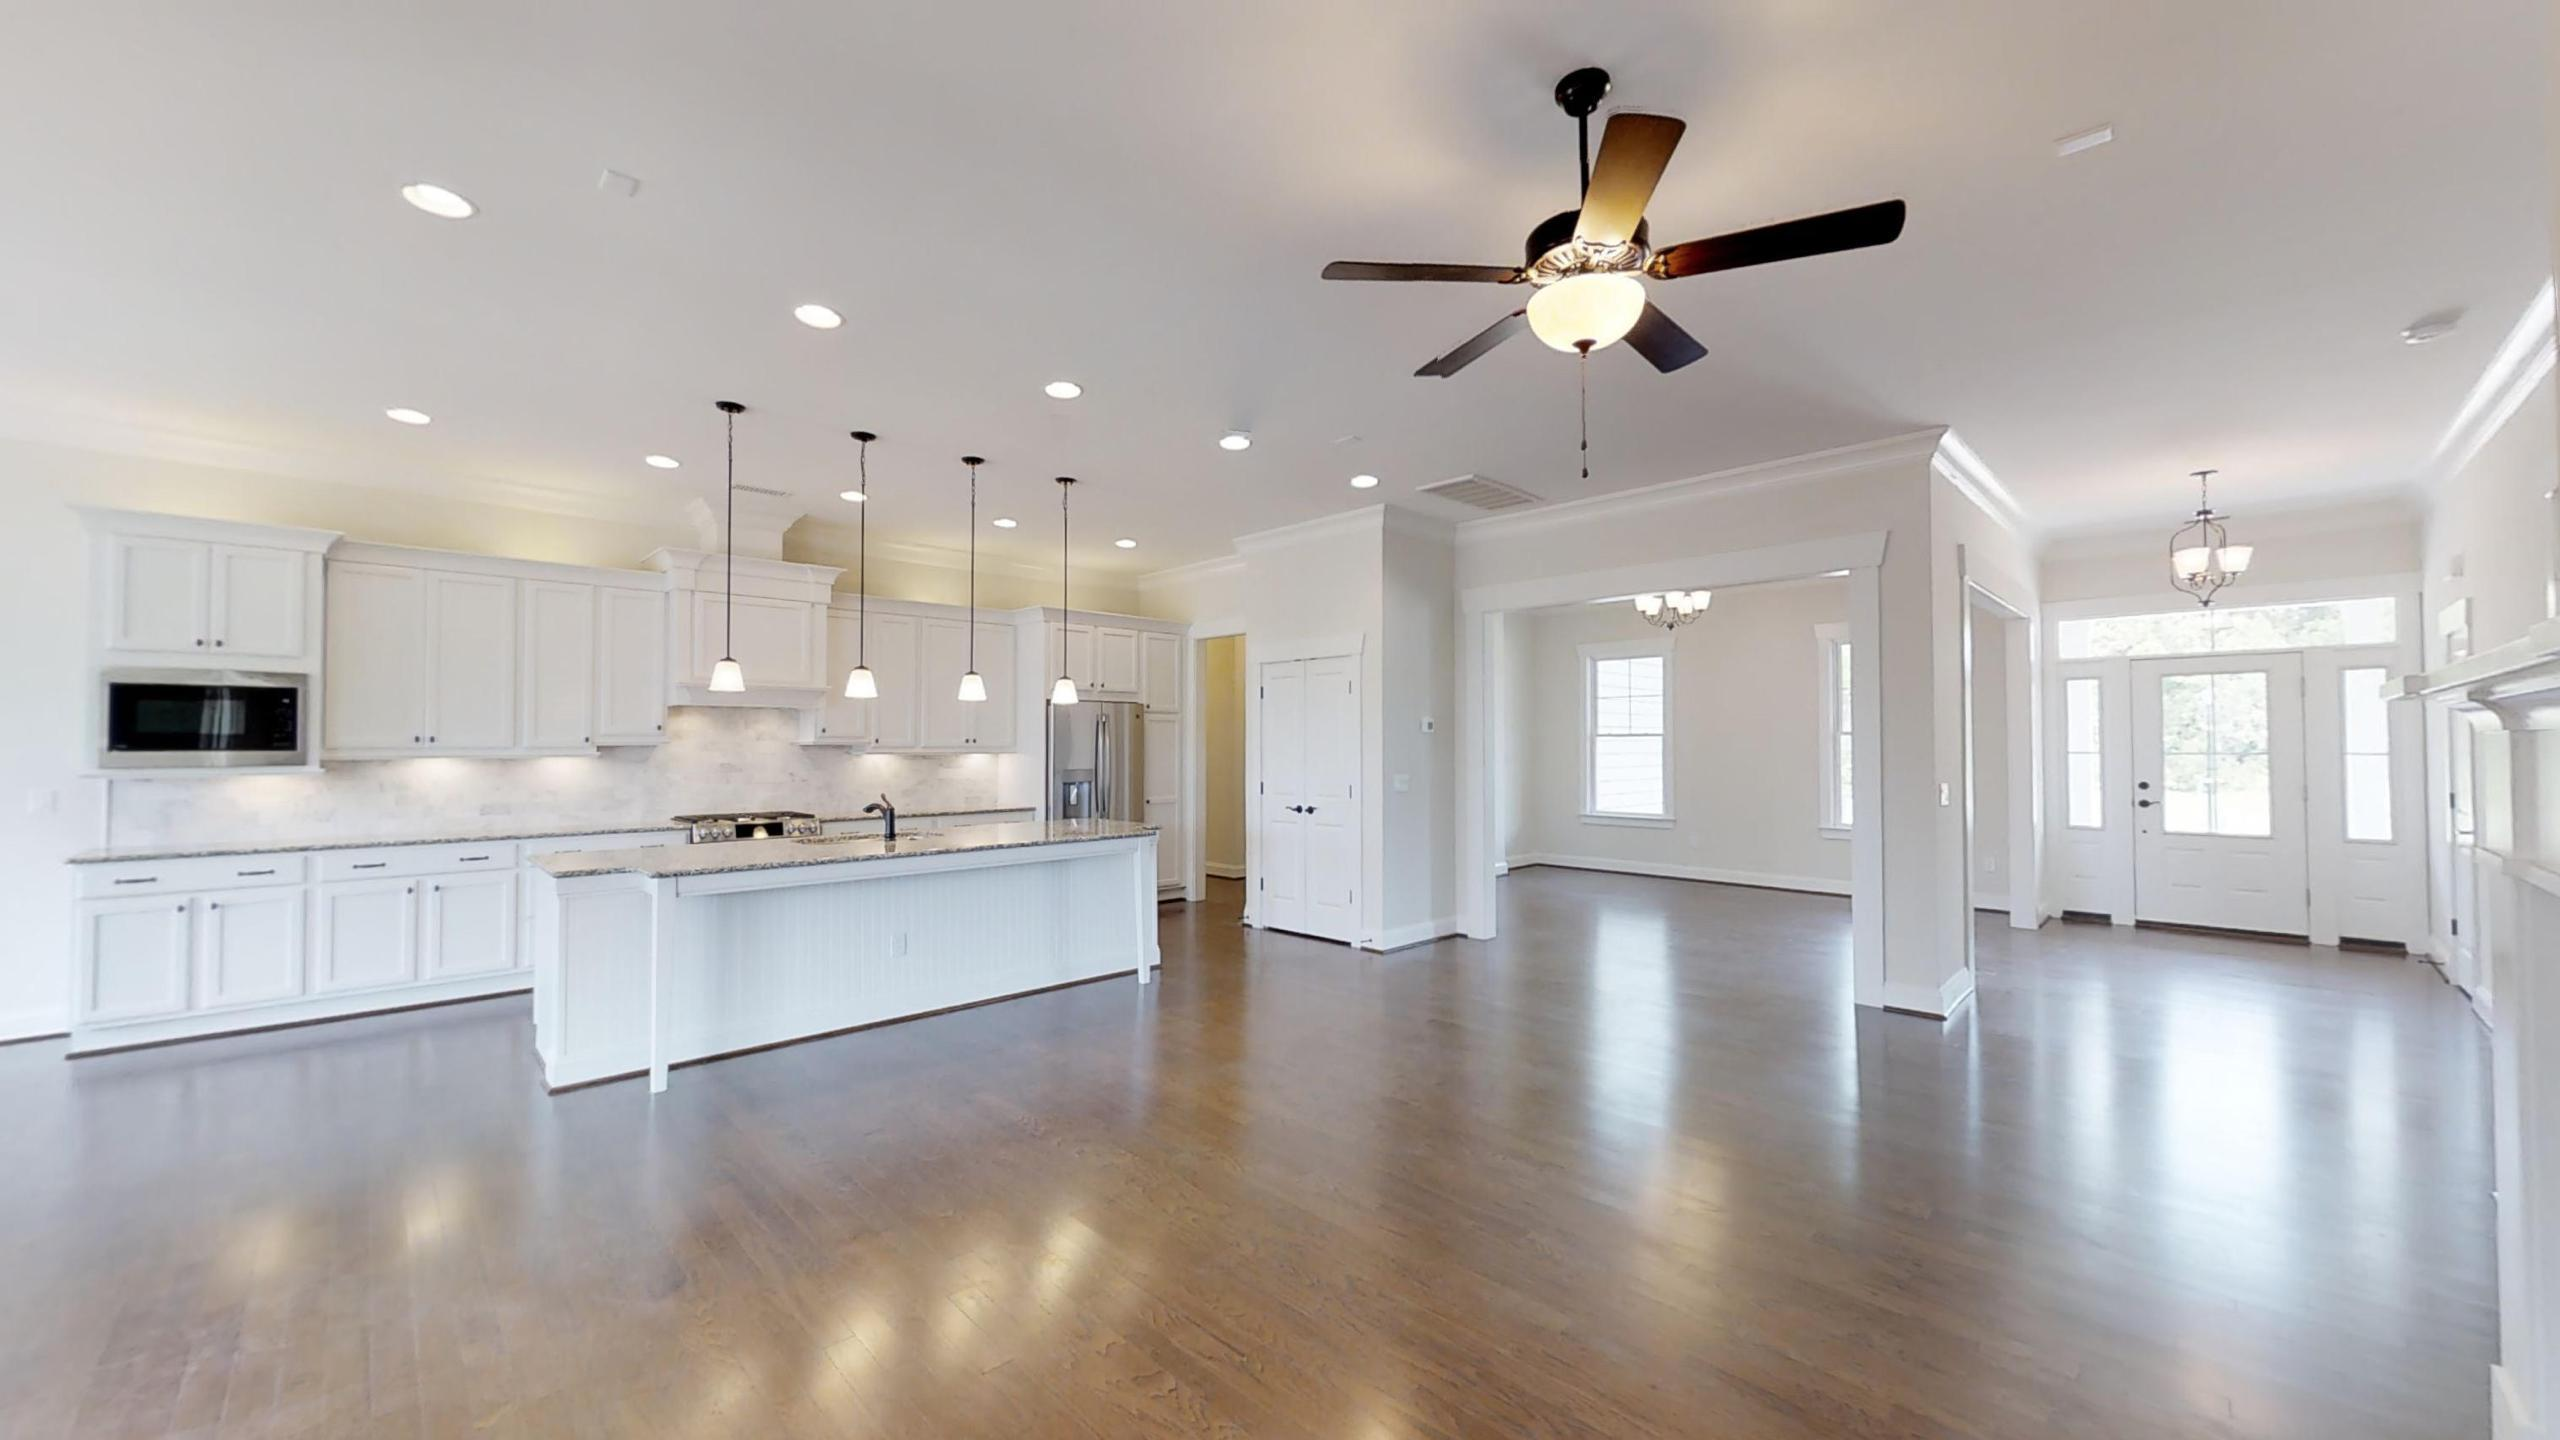 Kitchen featured in The Bayou Cottage By Stephen Alexander Homes in Outer Banks, NC